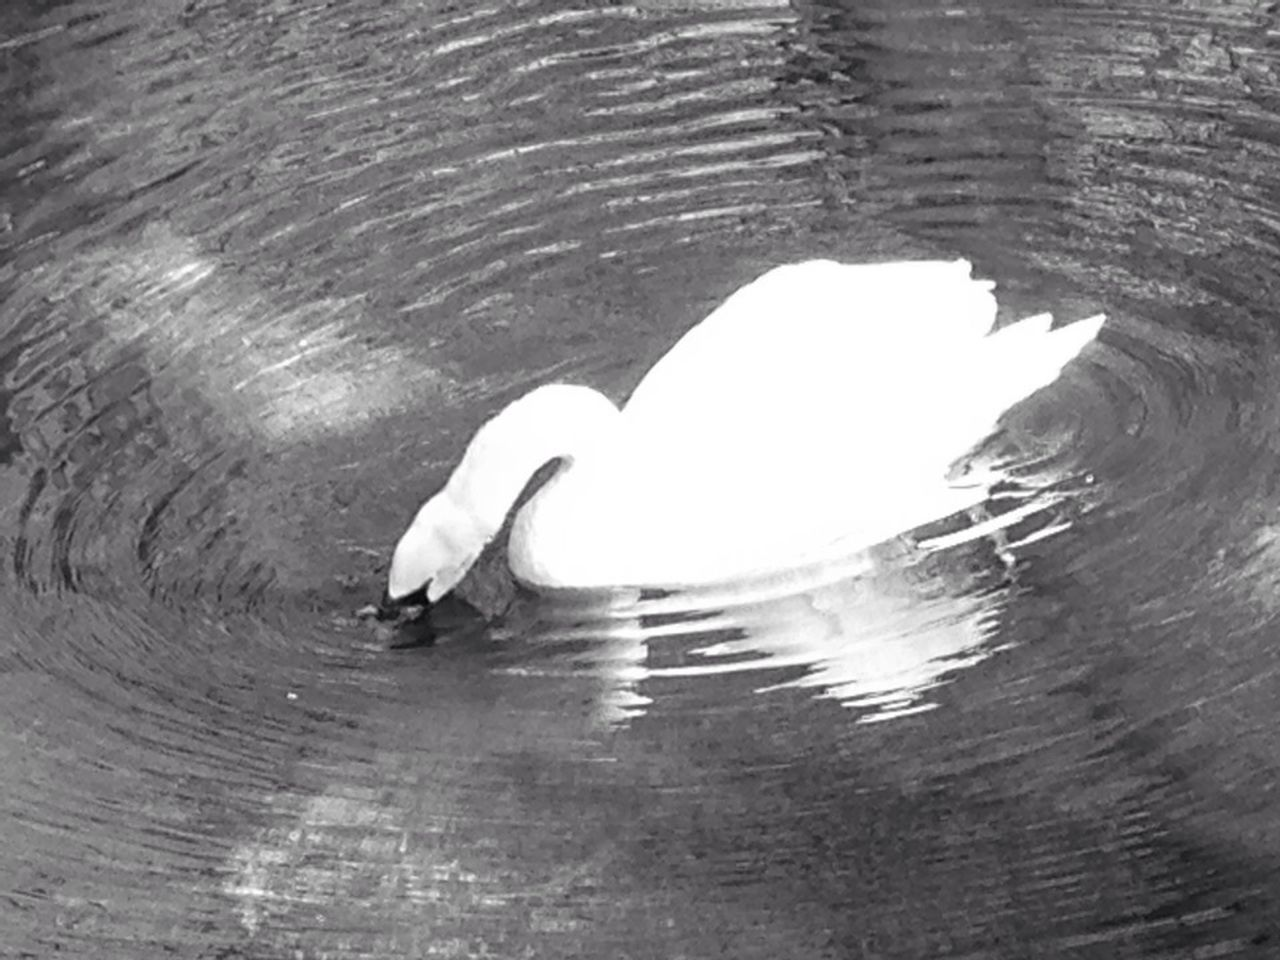 animal themes, bird, animals in the wild, one animal, water, wildlife, swan, lake, white color, waterfront, swimming, water bird, rippled, white, zoology, beak, nature, reflection, floating on water, water surface, tranquility, day, animal, beauty in nature, avian, outdoors, mute swan, no people, animal behavior